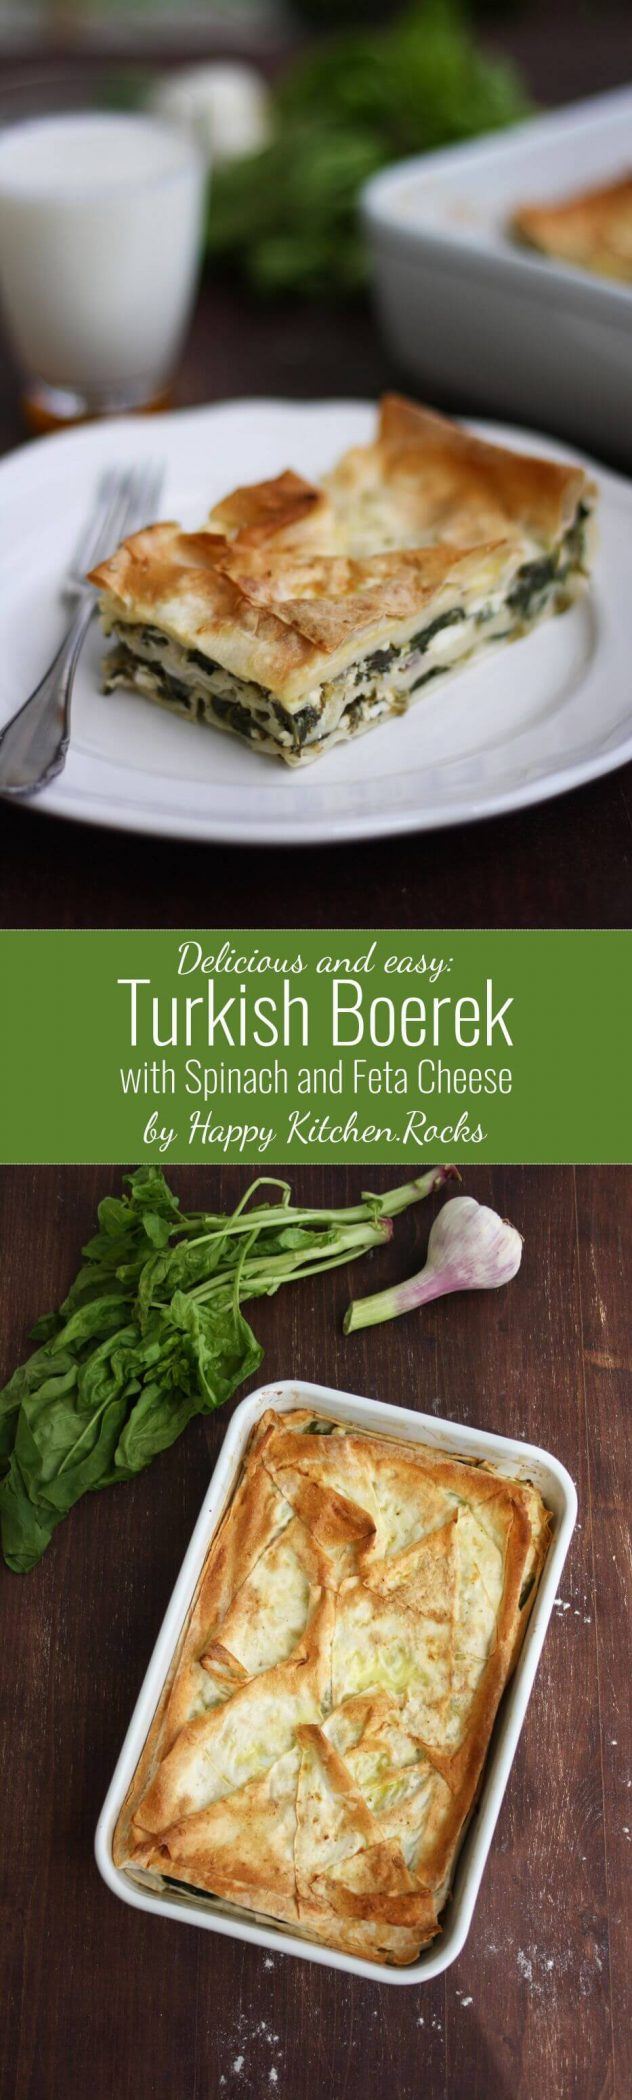 Turkish Boerek with Spinach and Feta Cheese Super Long Collage with Text Overlay